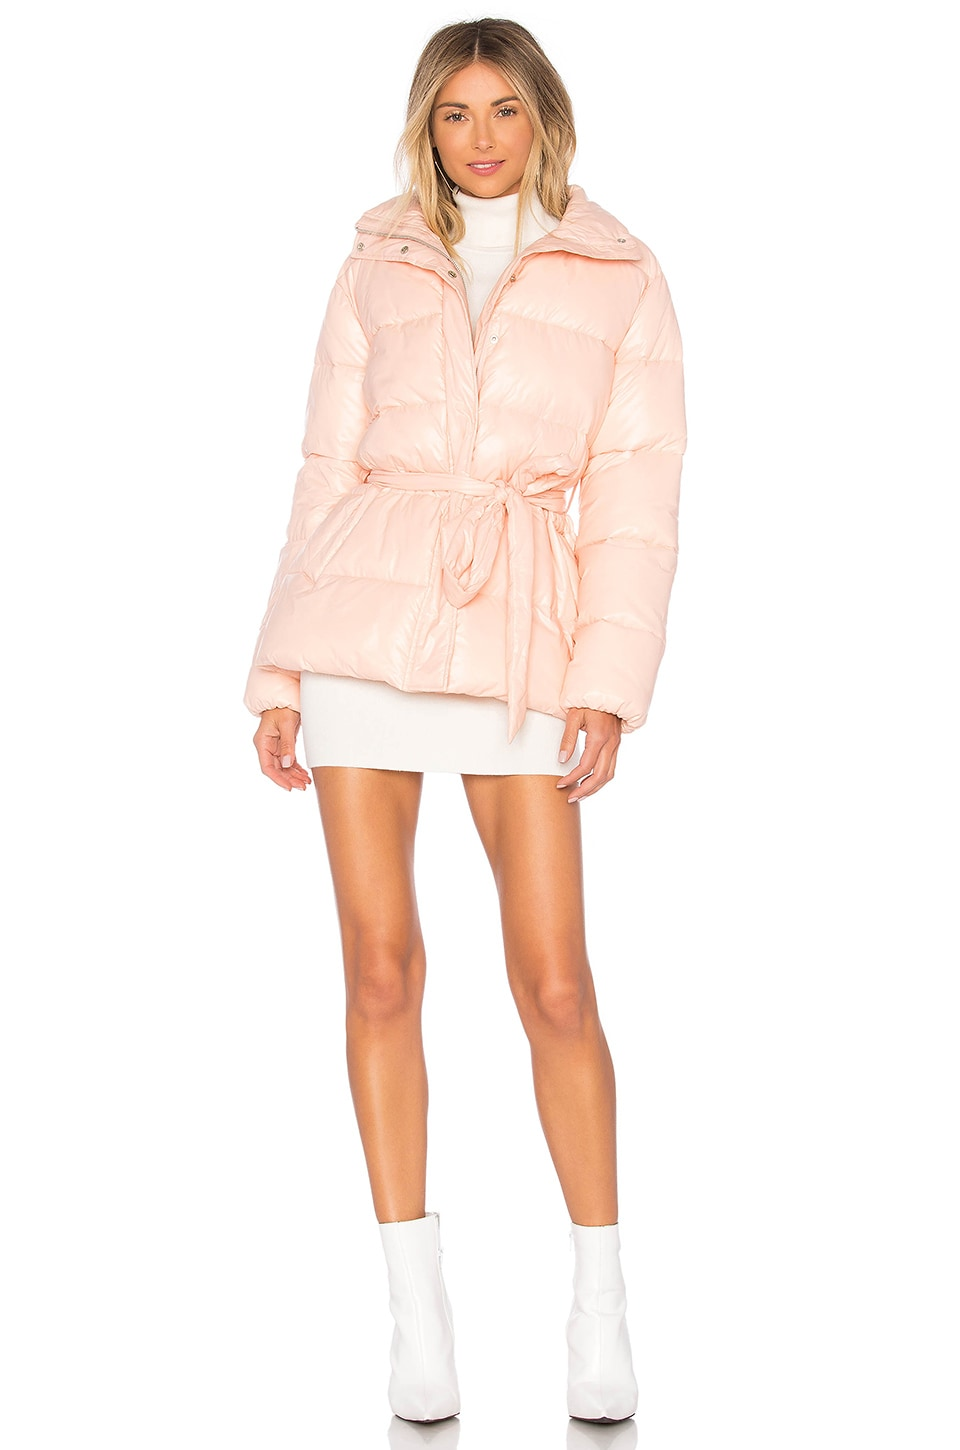 Lovers + Friends Cold Night Puffer in Blush